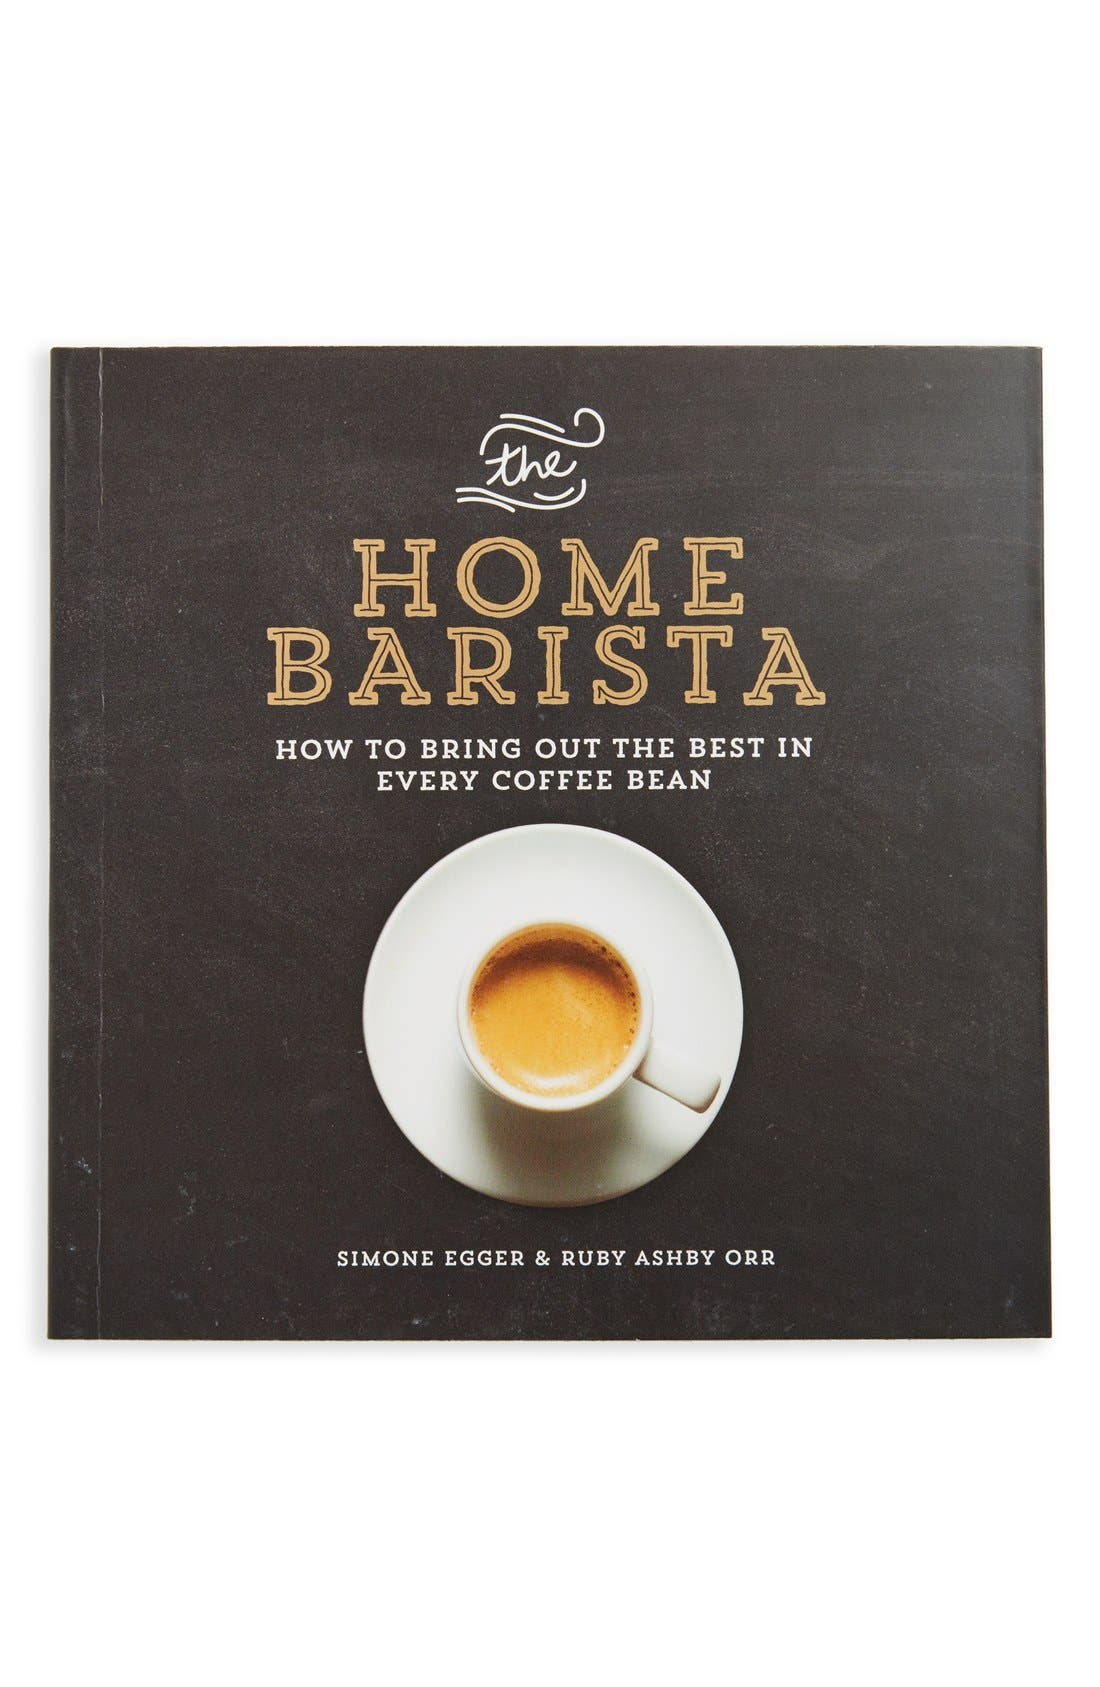 Alternate Image 1 Selected - 'The Home Barista' Book